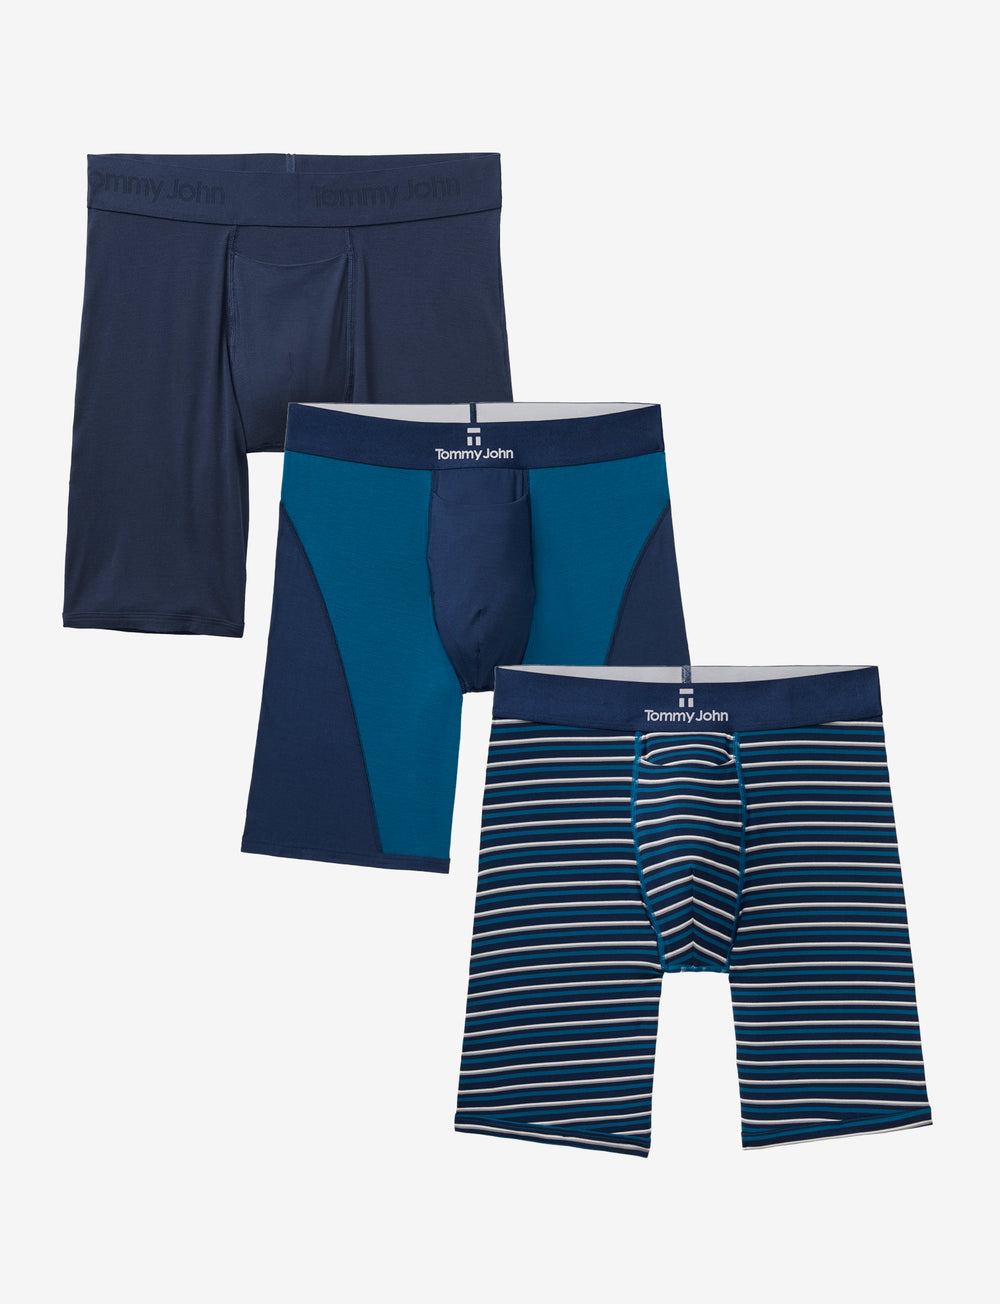 Men's Second Skin Boxer Brief Spring Sampler Pack Details Image